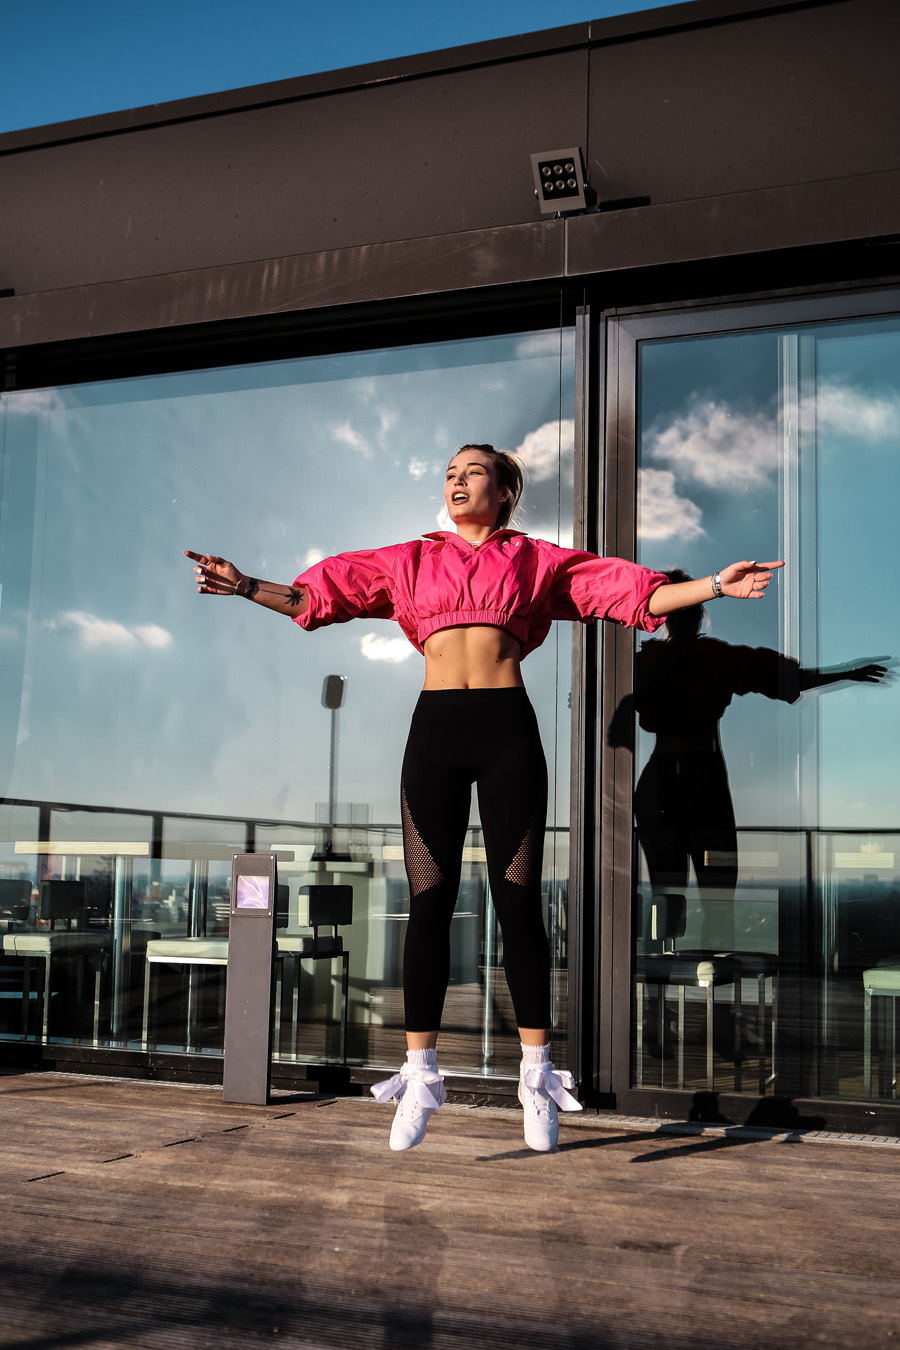 Asos-lauralamode-asos4505-sport-fitness.asos sport-munich-muenchen-reebok-fashion-footlocker-sport look-upside east-fit-fitnessblogger-blogger-fitspo-workout